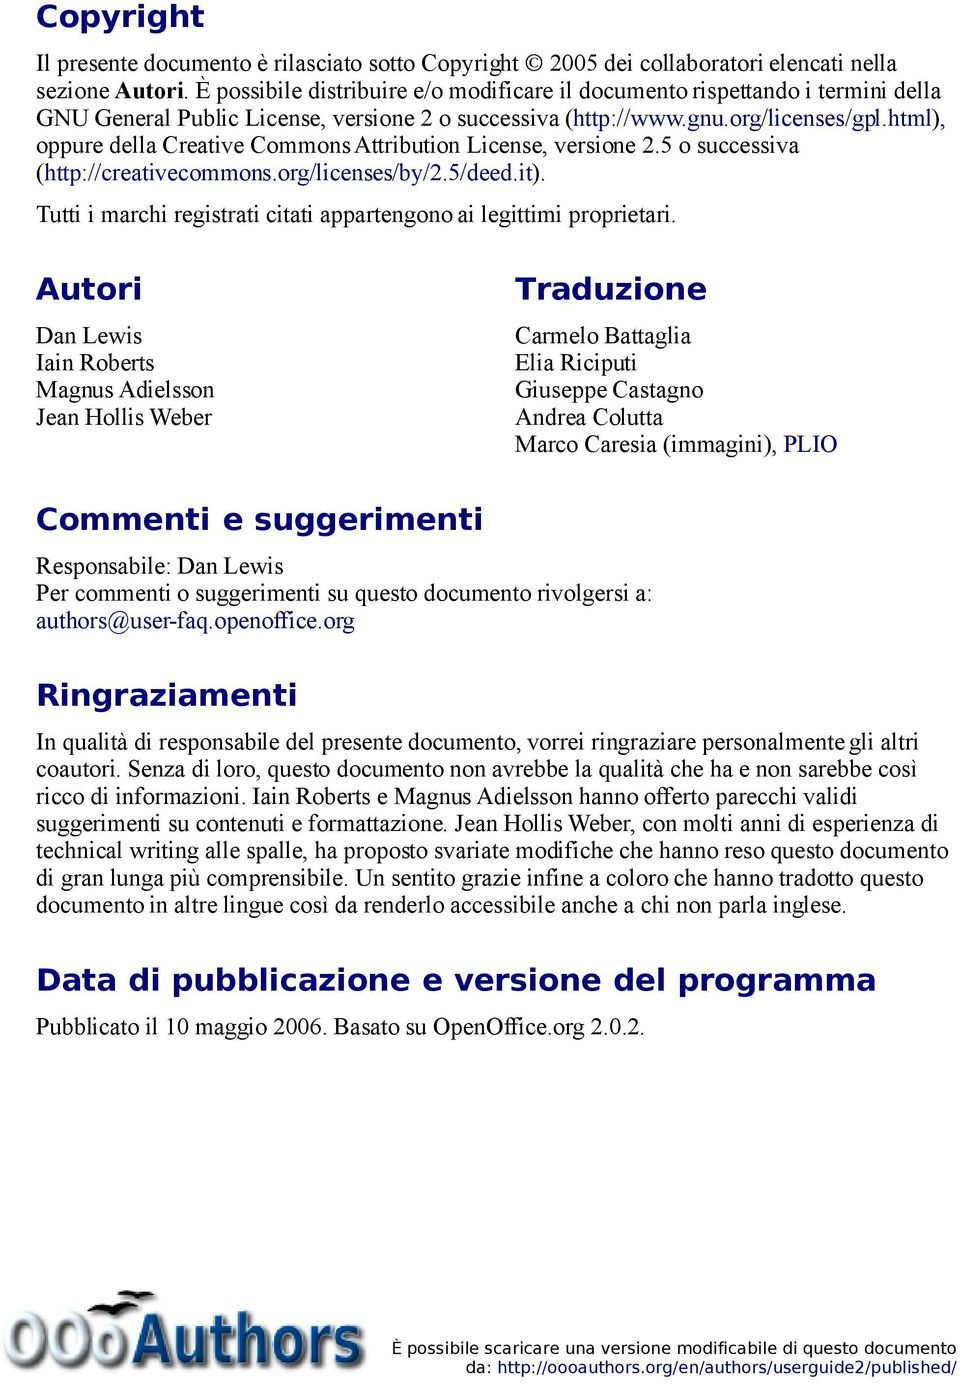 html), oppure della Creative Commons Attribution License, versione 2.5 o successiva (http://creativecommons.org/licenses/by/2.5/deed.it).